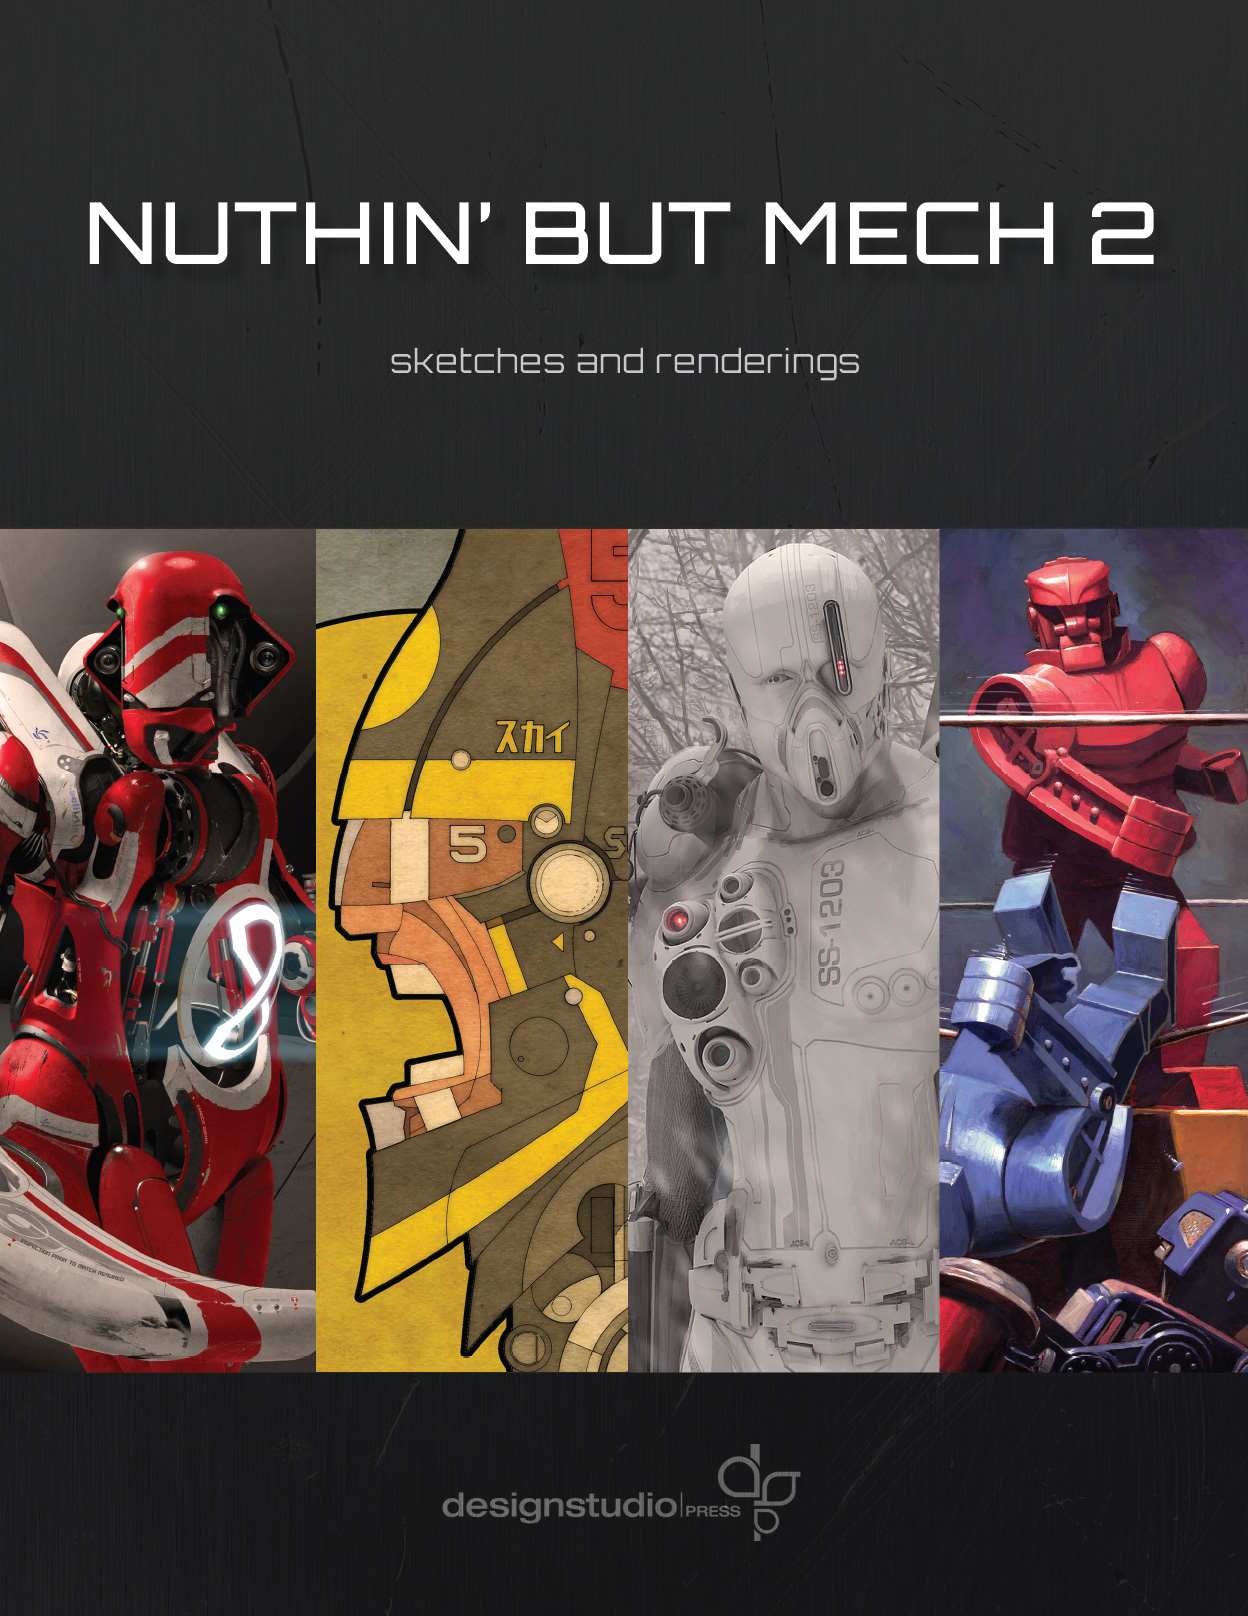 Nuthin' But Mech 2 (11 pics)